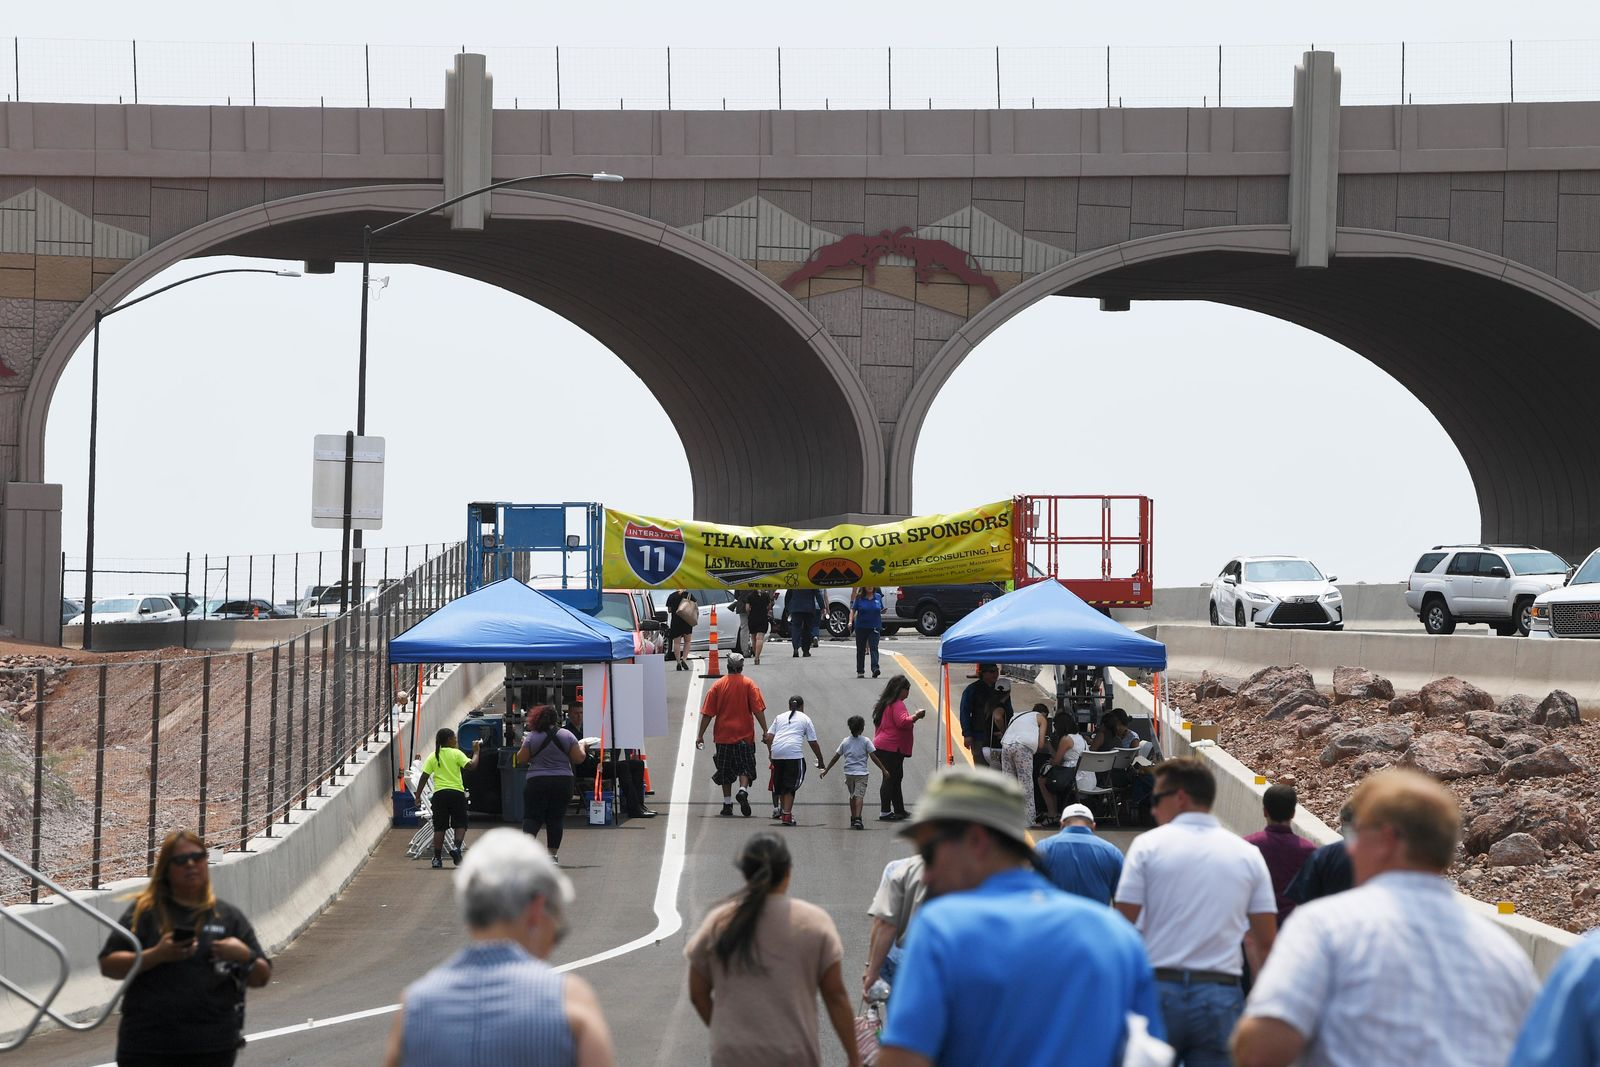 Attendees leave the festivities after the grand opening of a new section of Interstate 11 Thursday, August 9, 2018, in Boulder City. The section, also referred to as the Boulder City Bypass, marks the official start of the I-11 project between Las Vegas and Phoenix. CREDIT: Sam Morris/Las Vegas News Bureau